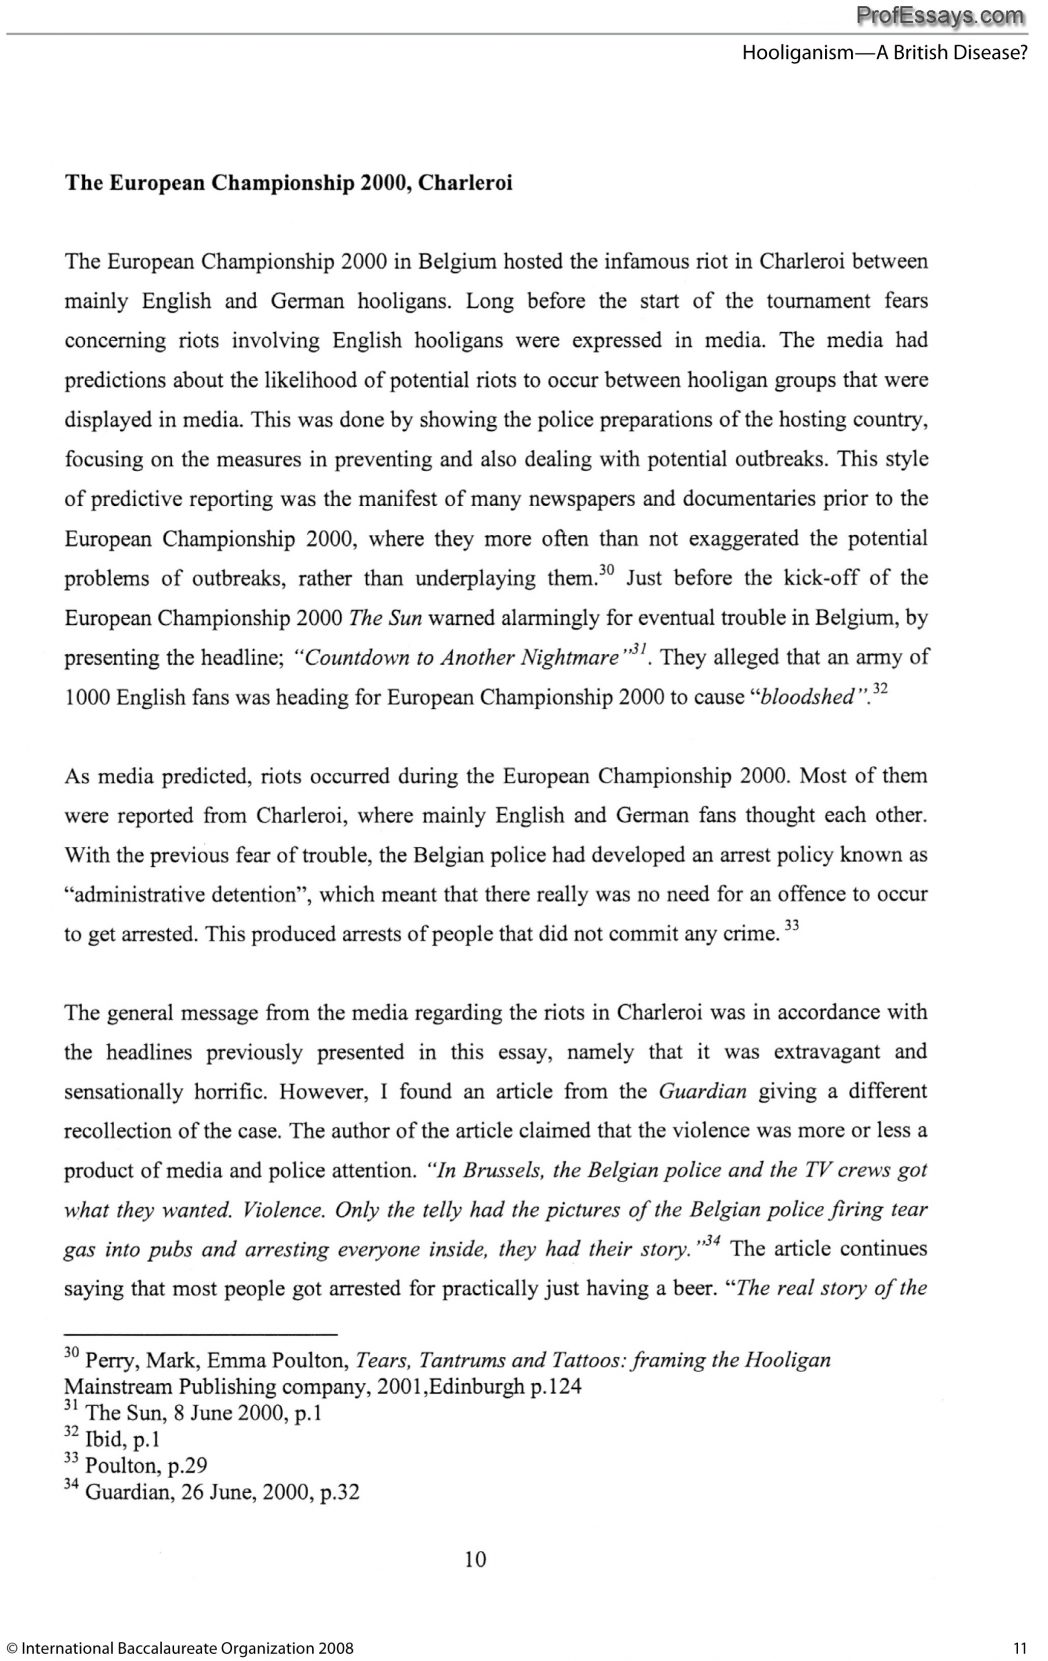 014 Essay Example Book English Importance Of Persuasive Examples Pdf Ib Extended Free S Writing Argumentative Opinion Process Sat Exemplification Narrative Classification 1048x1661 Impressive Reflective Conclusion Report Sample Full